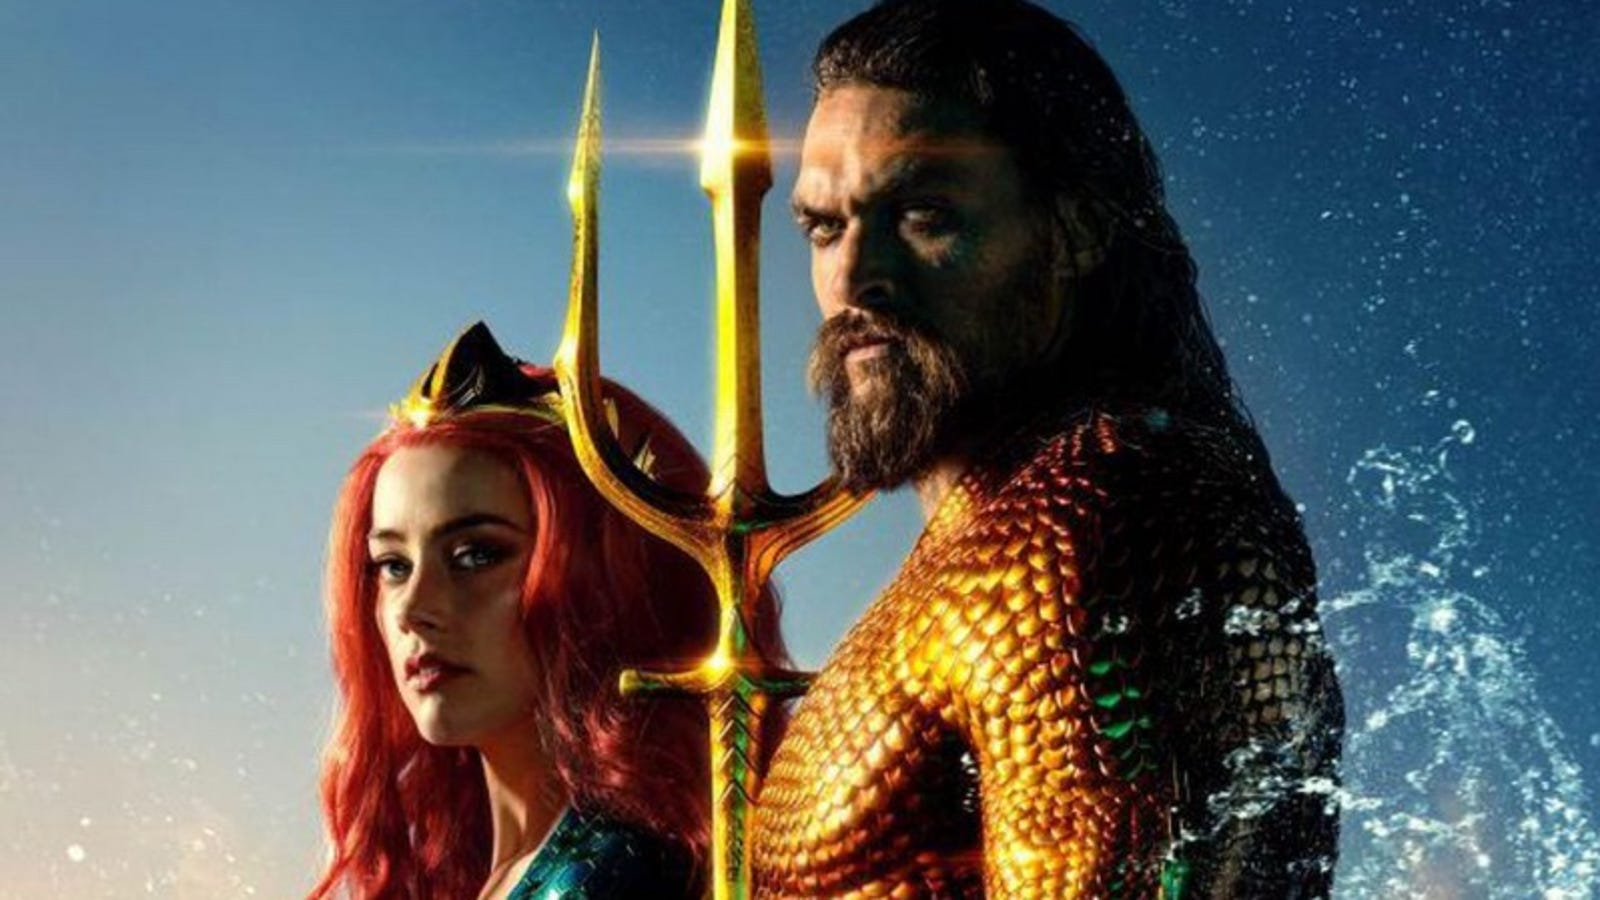 You Can See Aquaman a Week Early...If You Have Amazon Prime